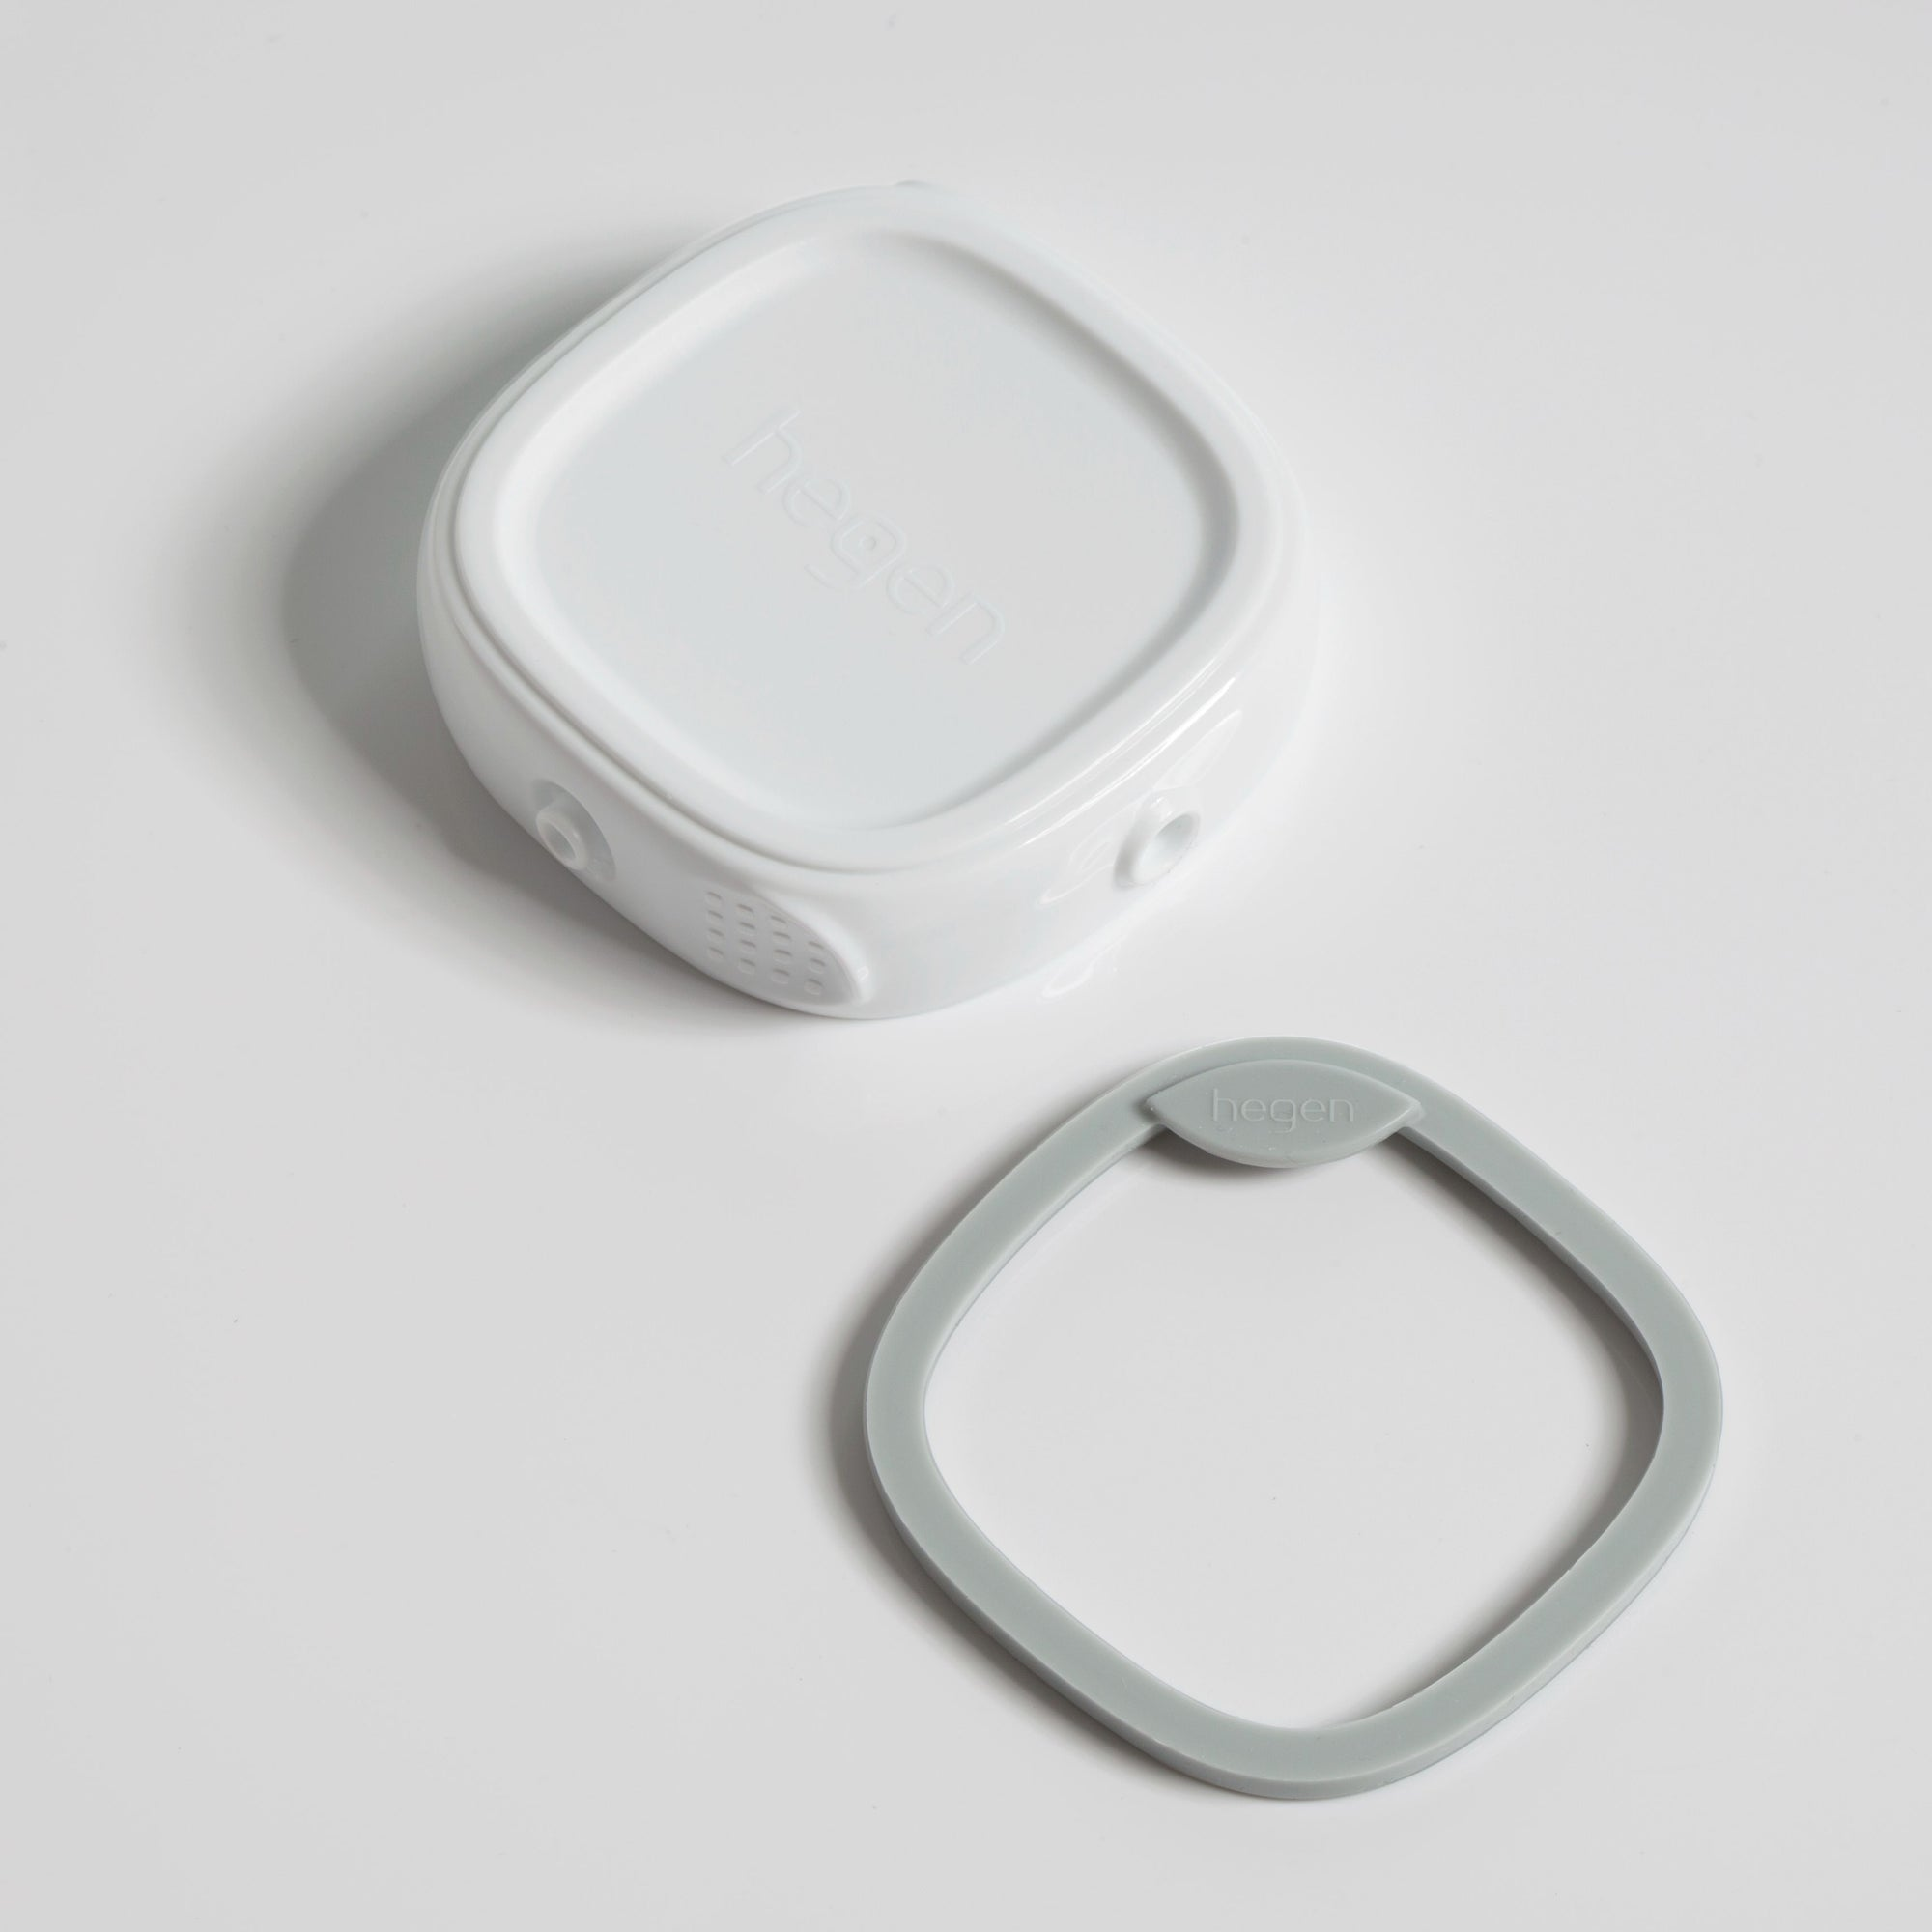 Hegen PCTO™ Breast Milk Storage Lid White (1-pack)